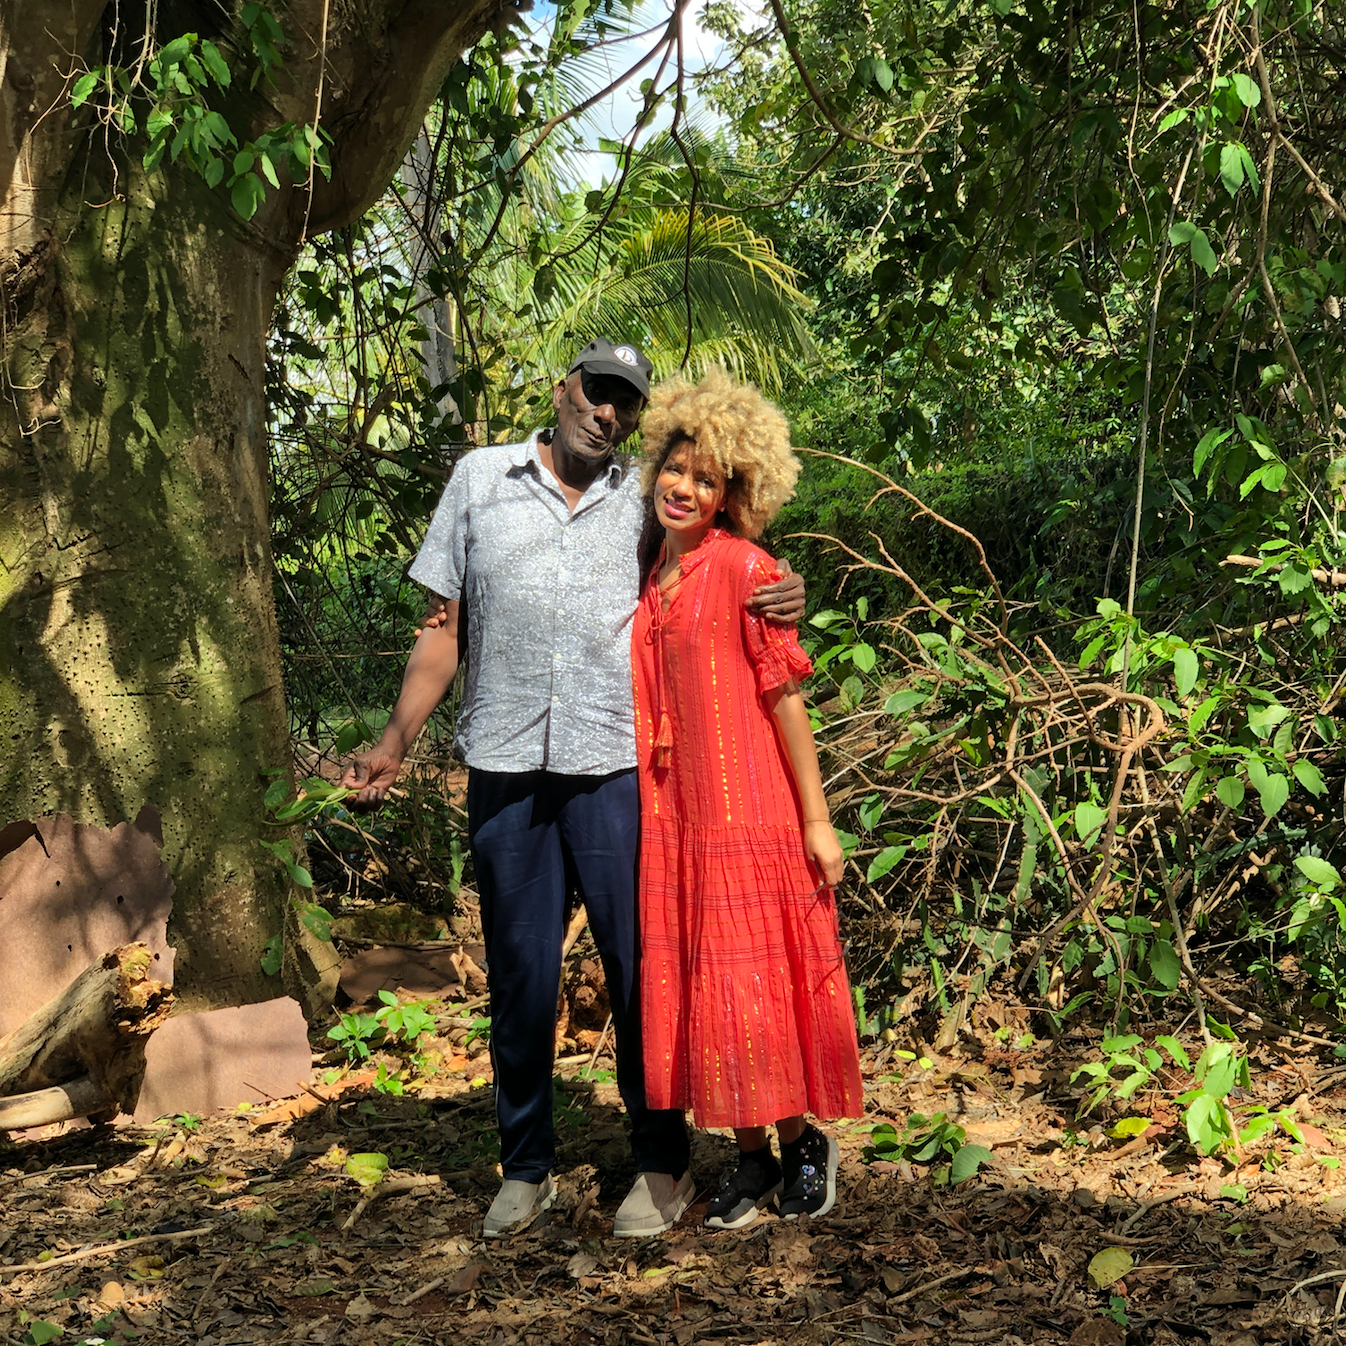 Leysa with her father in Cuba, next to a tree that was planted in the 1890's